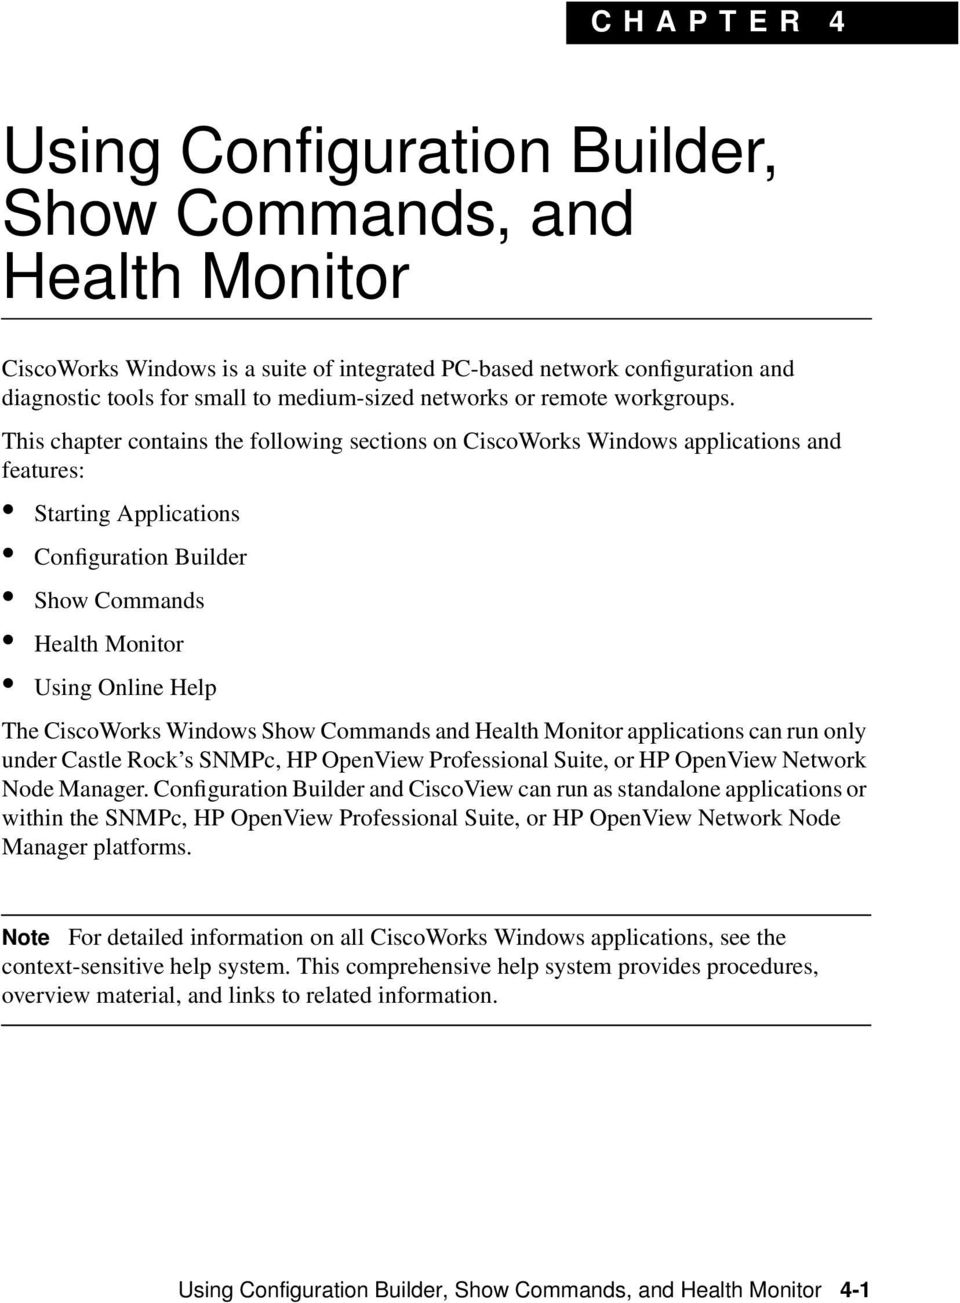 This chapter contains the following sections on CiscoWorks Windows applications and features: Starting Applications Configuration Builder Show Commands Health Monitor Using Online Help The CiscoWorks